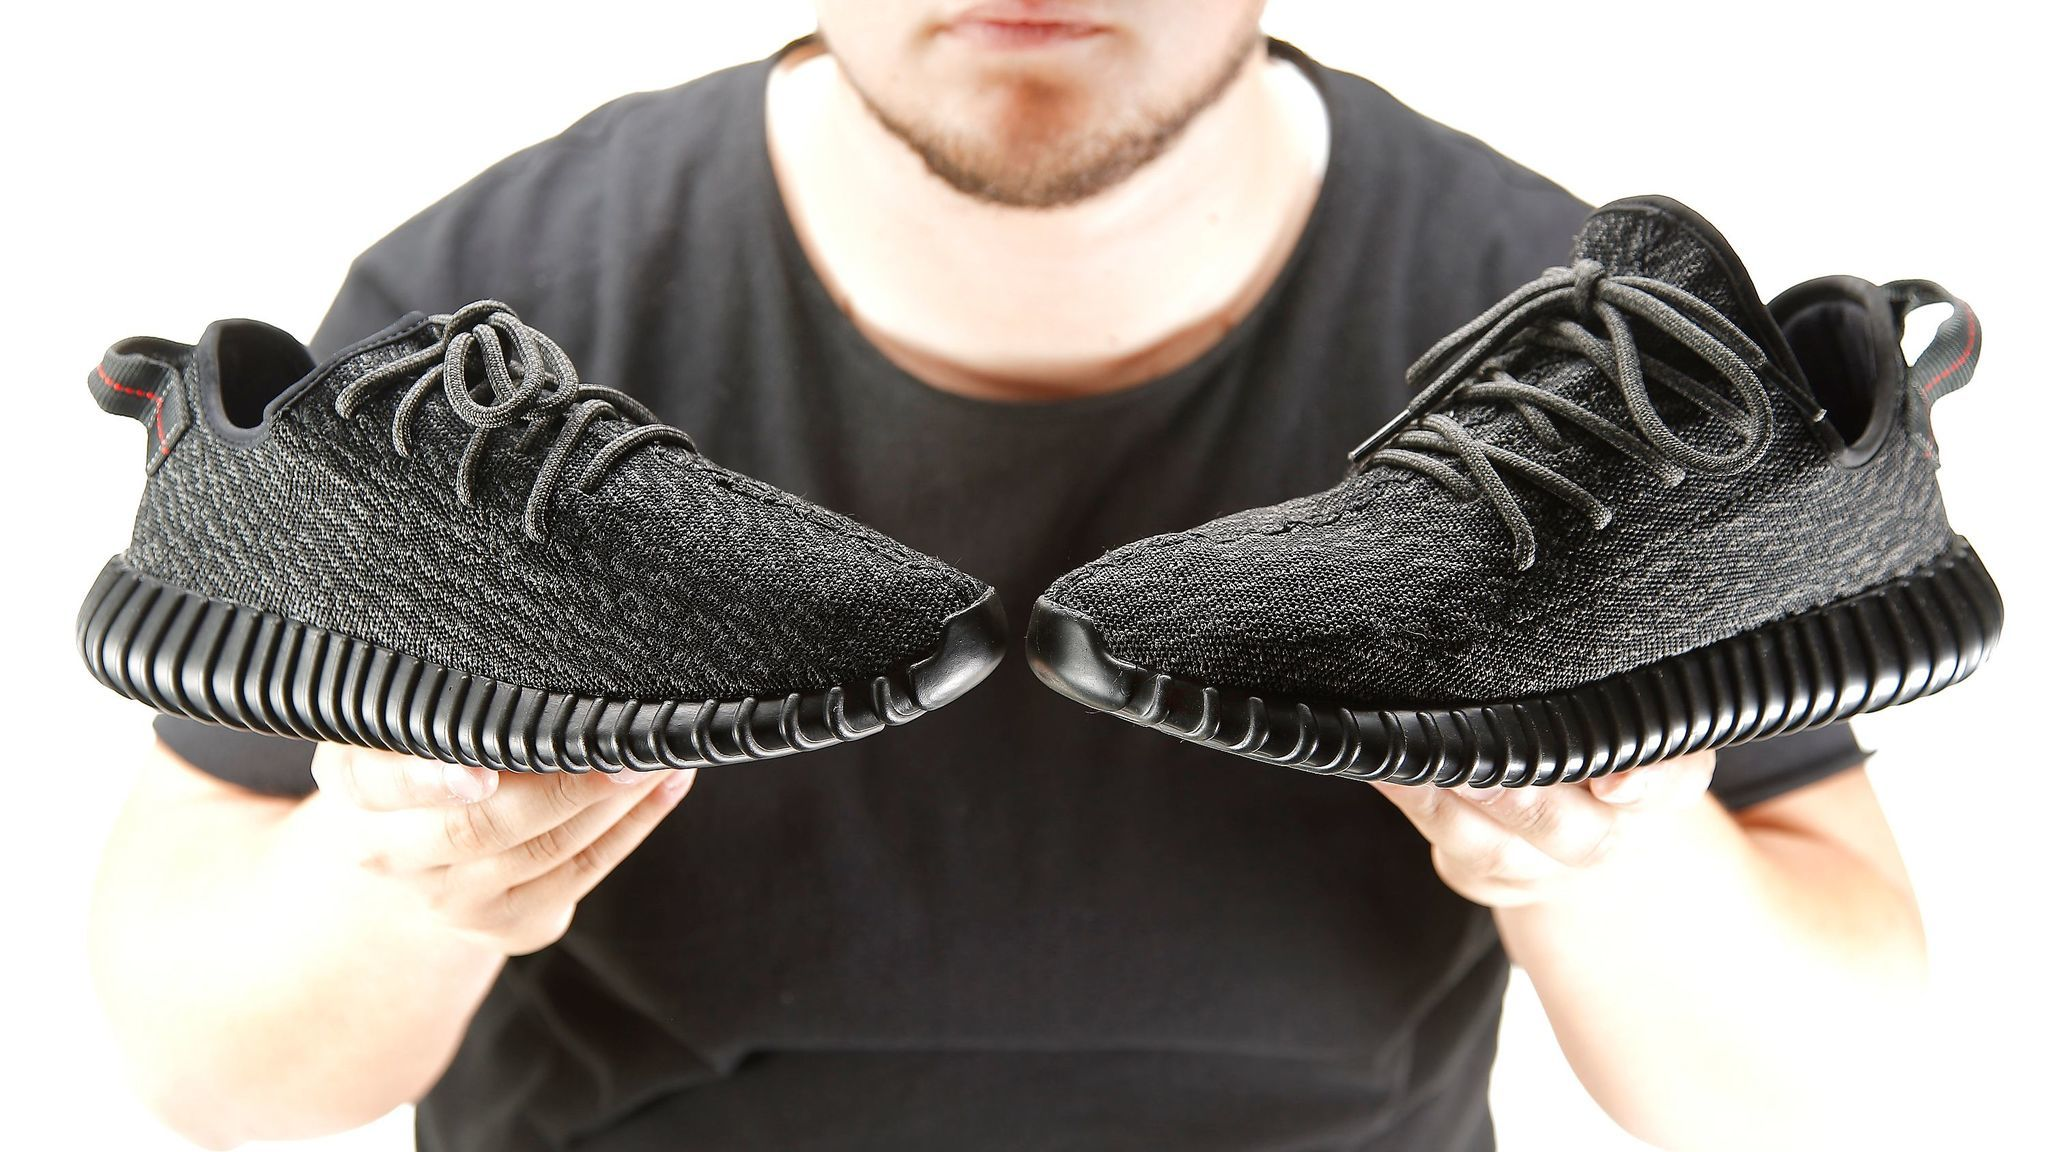 538e69b458ef Counterfeit Yeezys and the booming sneaker black market - Los ...